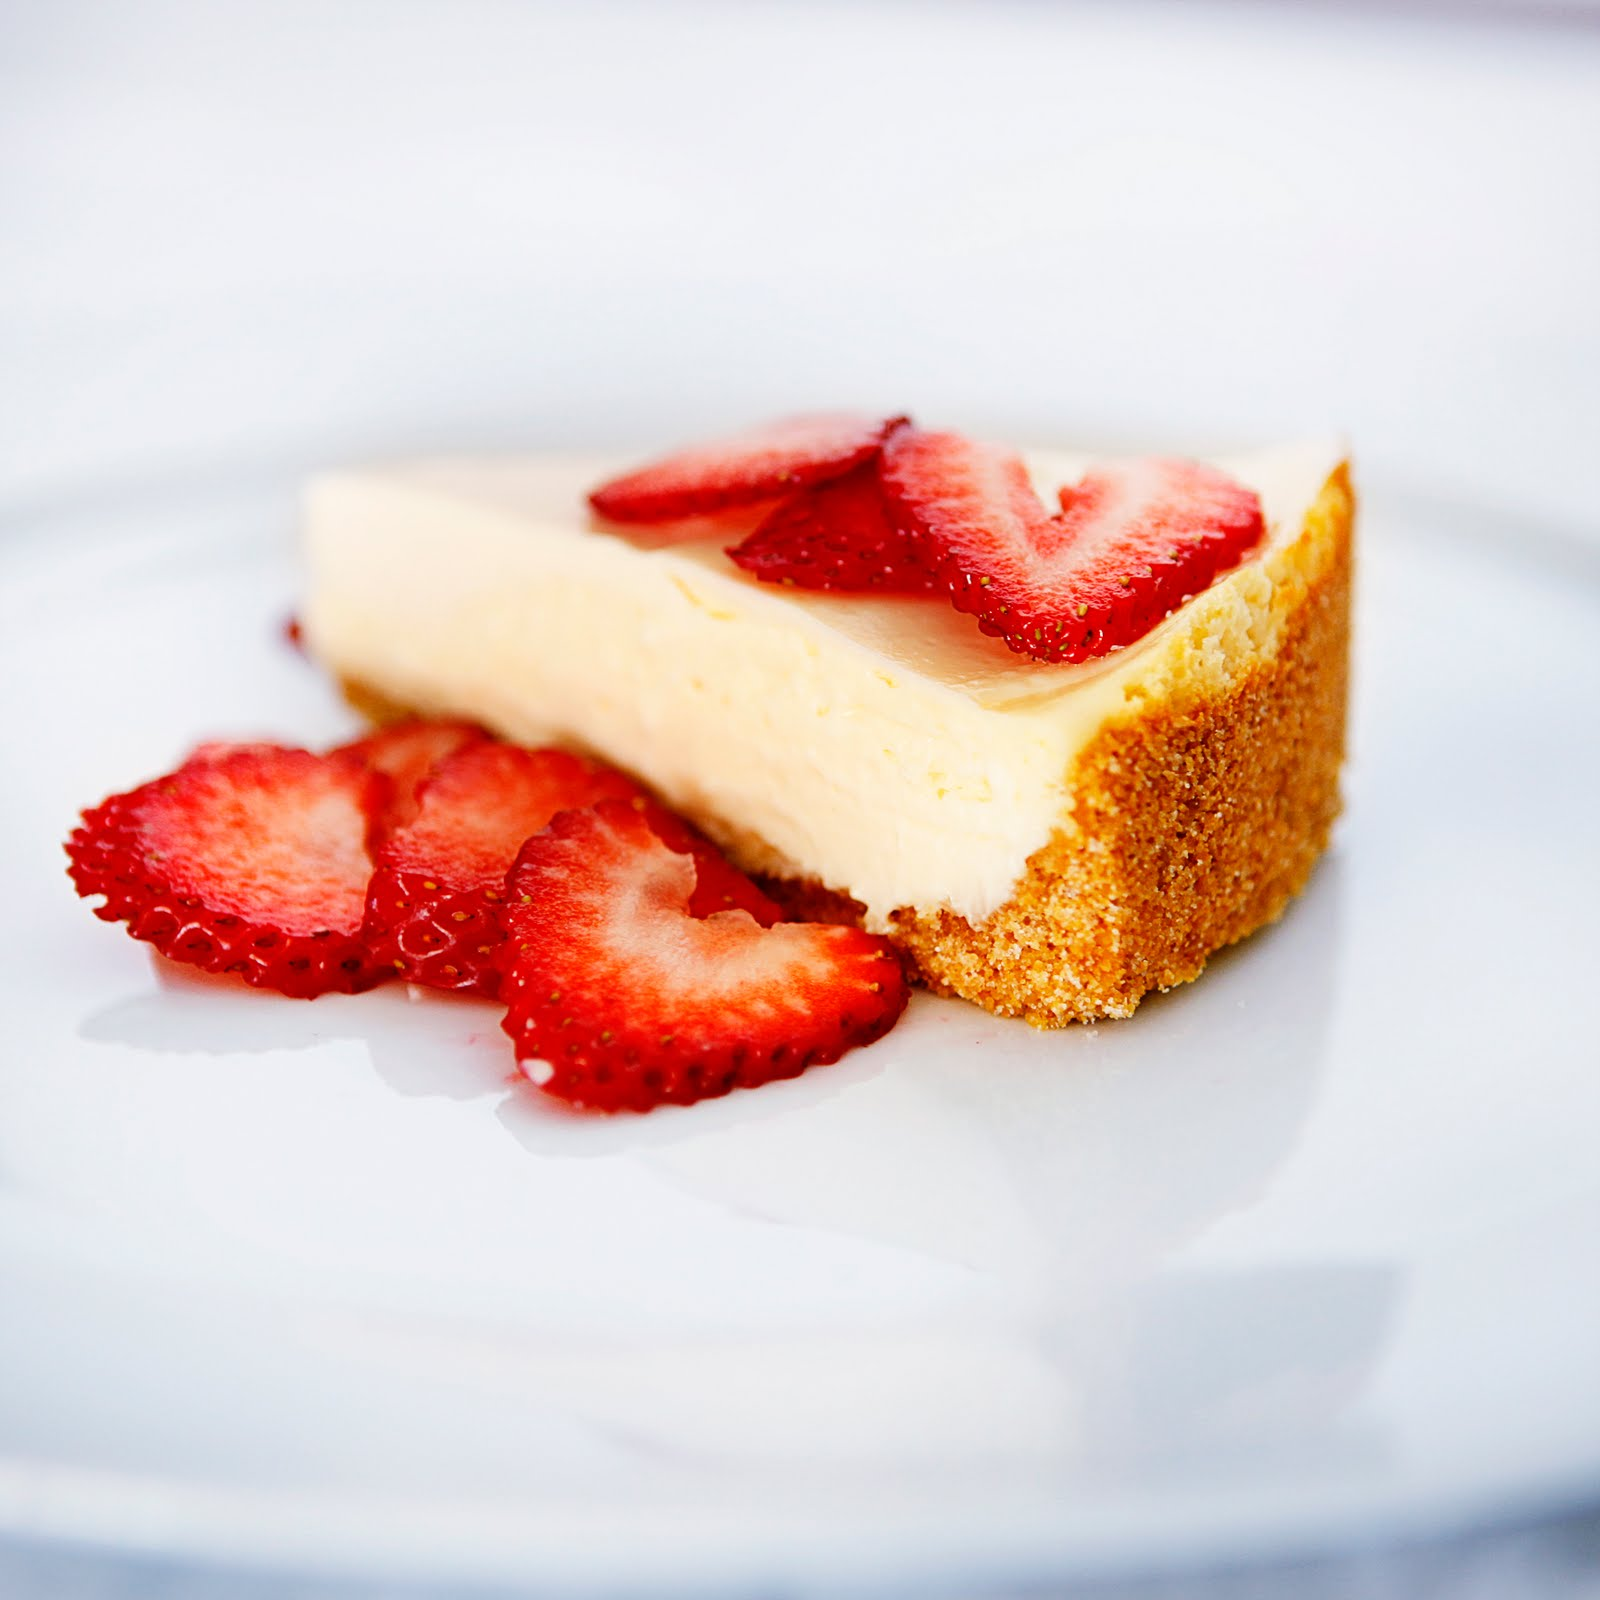 Confessions of a Bake-aholic: Cheesecake